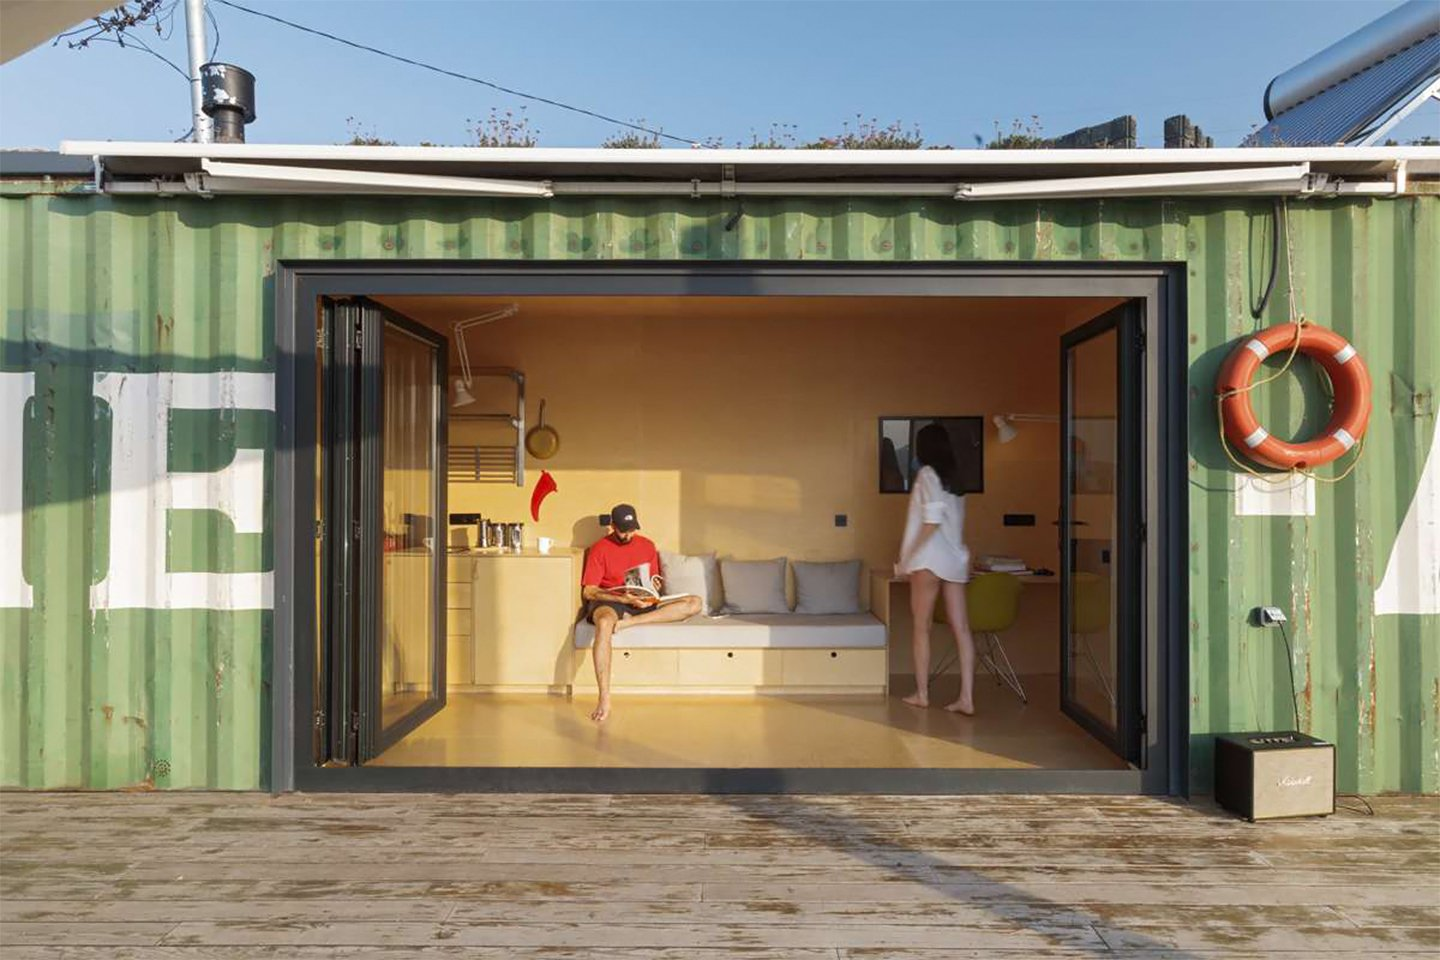 This shipping container has been transformed into a getaway by the sea!